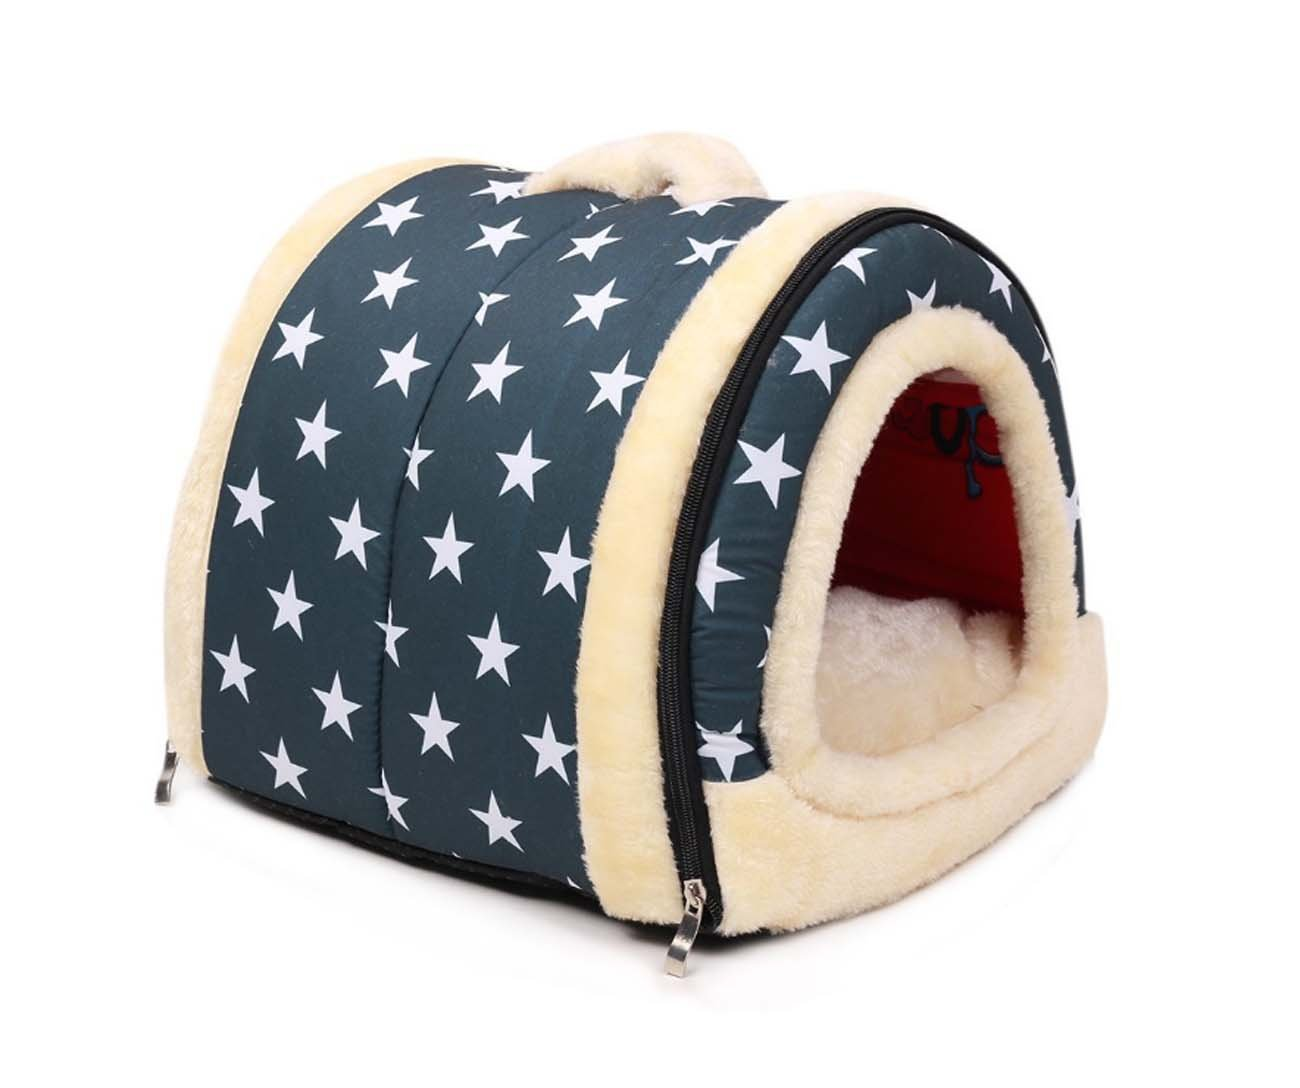 bluee SmallBlack Manba Cozy 2in1 Pet House And Sofa NonSlip Dog Cat Beds,Home Handbag Shape Washable Puppy Indoor Portable Foldable Dog Room Cat Bed, Warm House With A Removable Cushion Prep